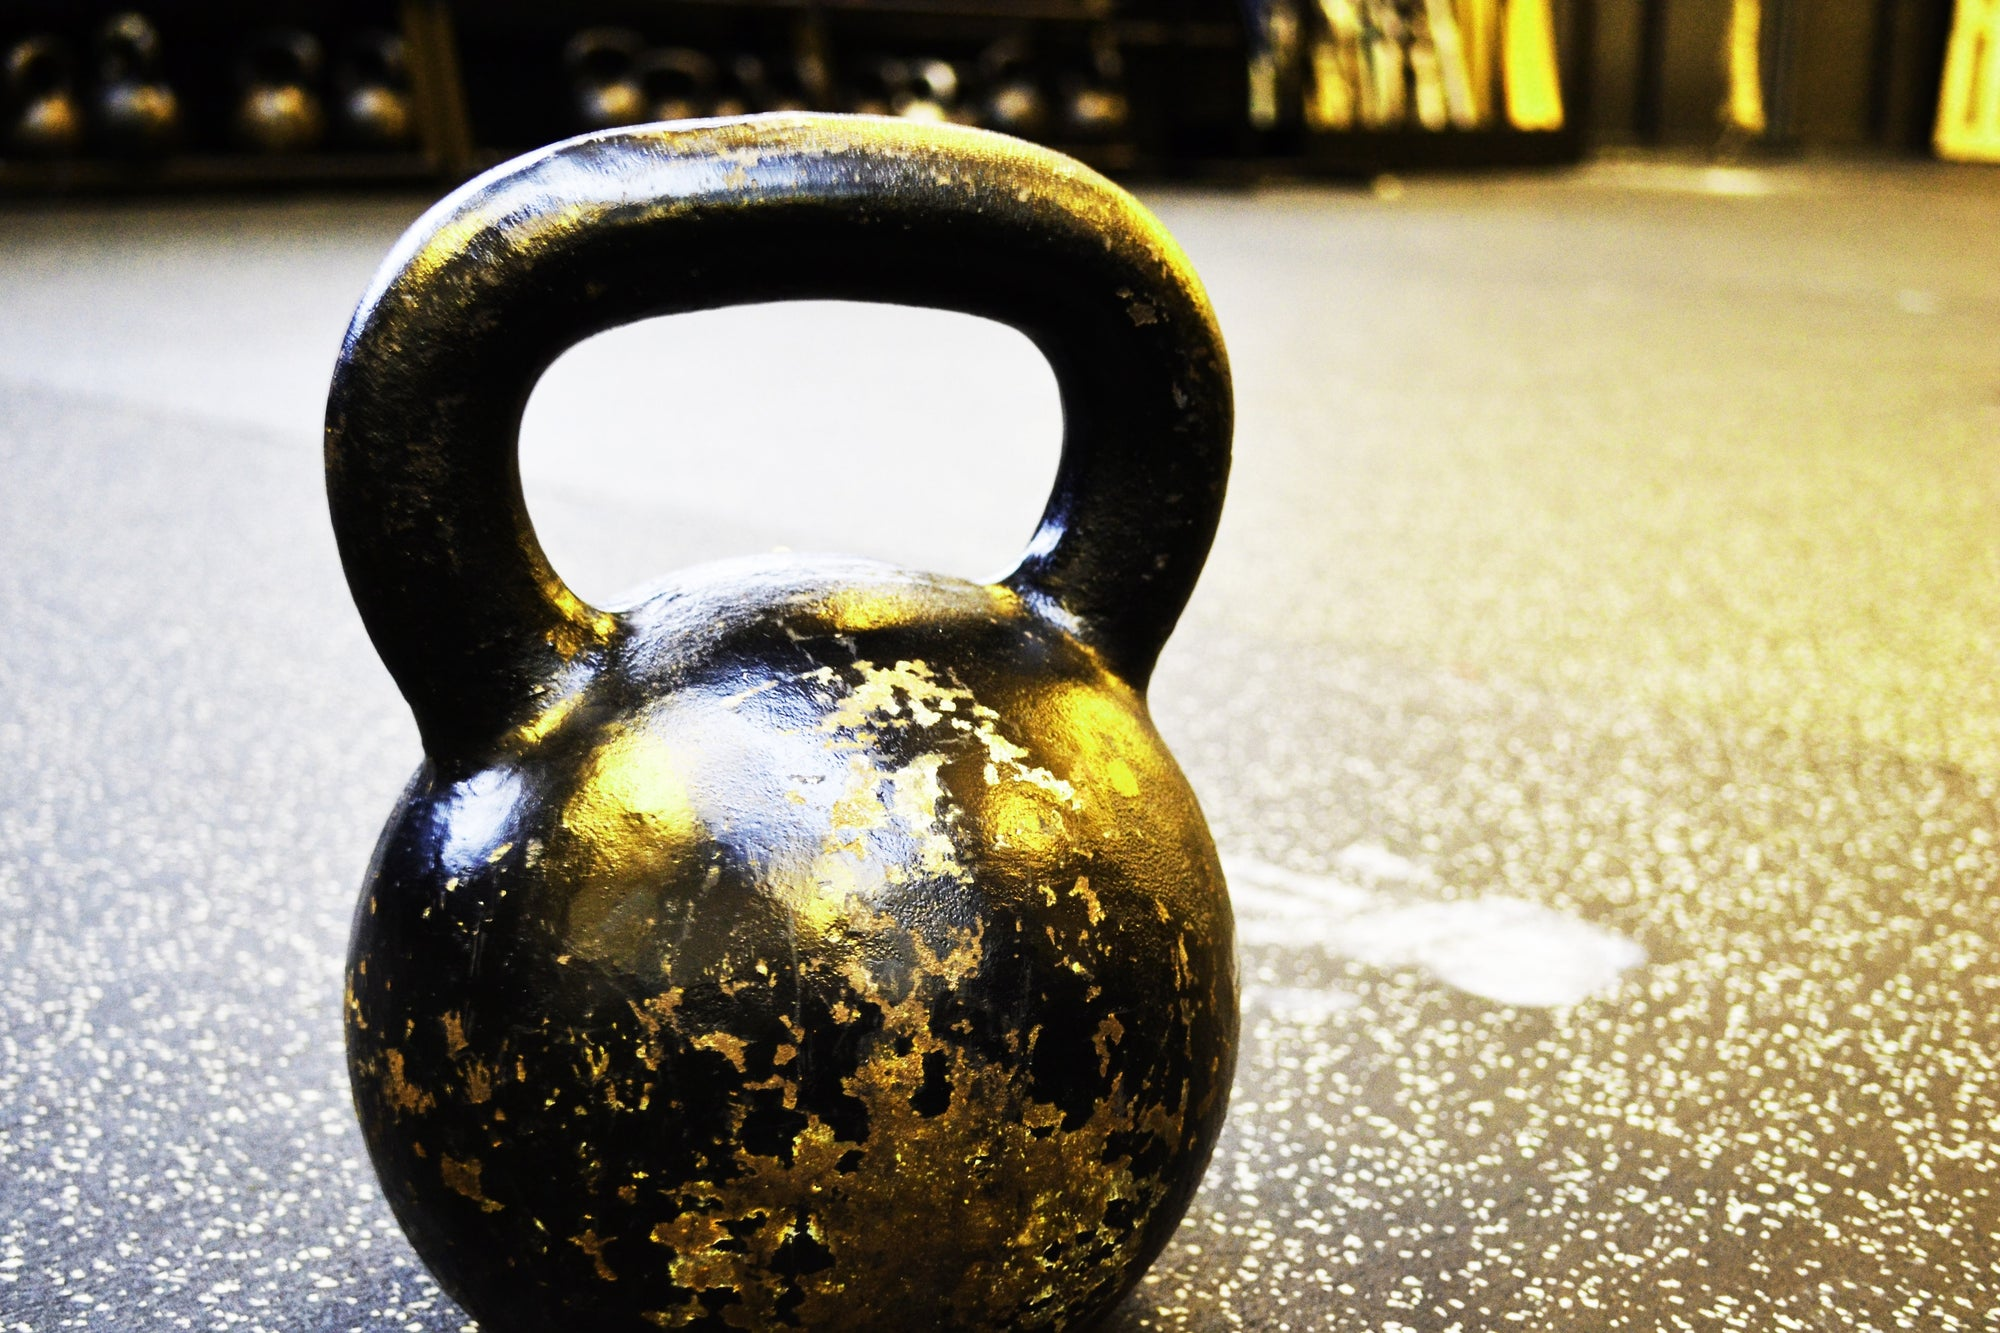 Kettlebell Clean and Press: Step-By-Step Process, Alternatives, and Warm-Up